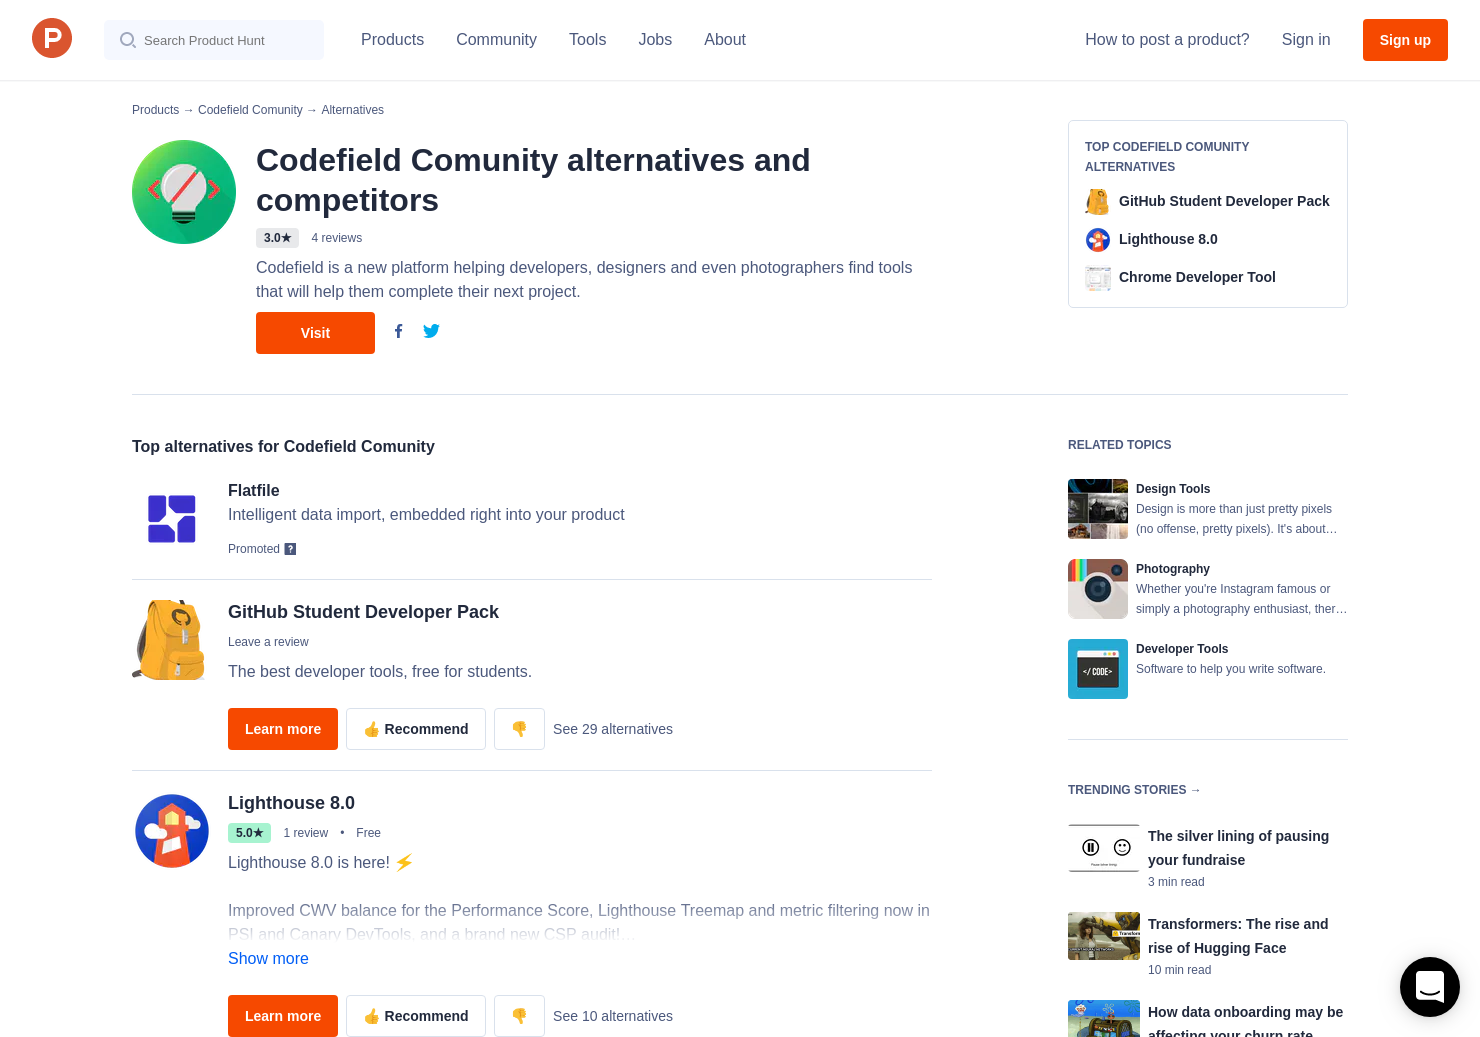 8 Alternatives to Codefield | Product Hunt